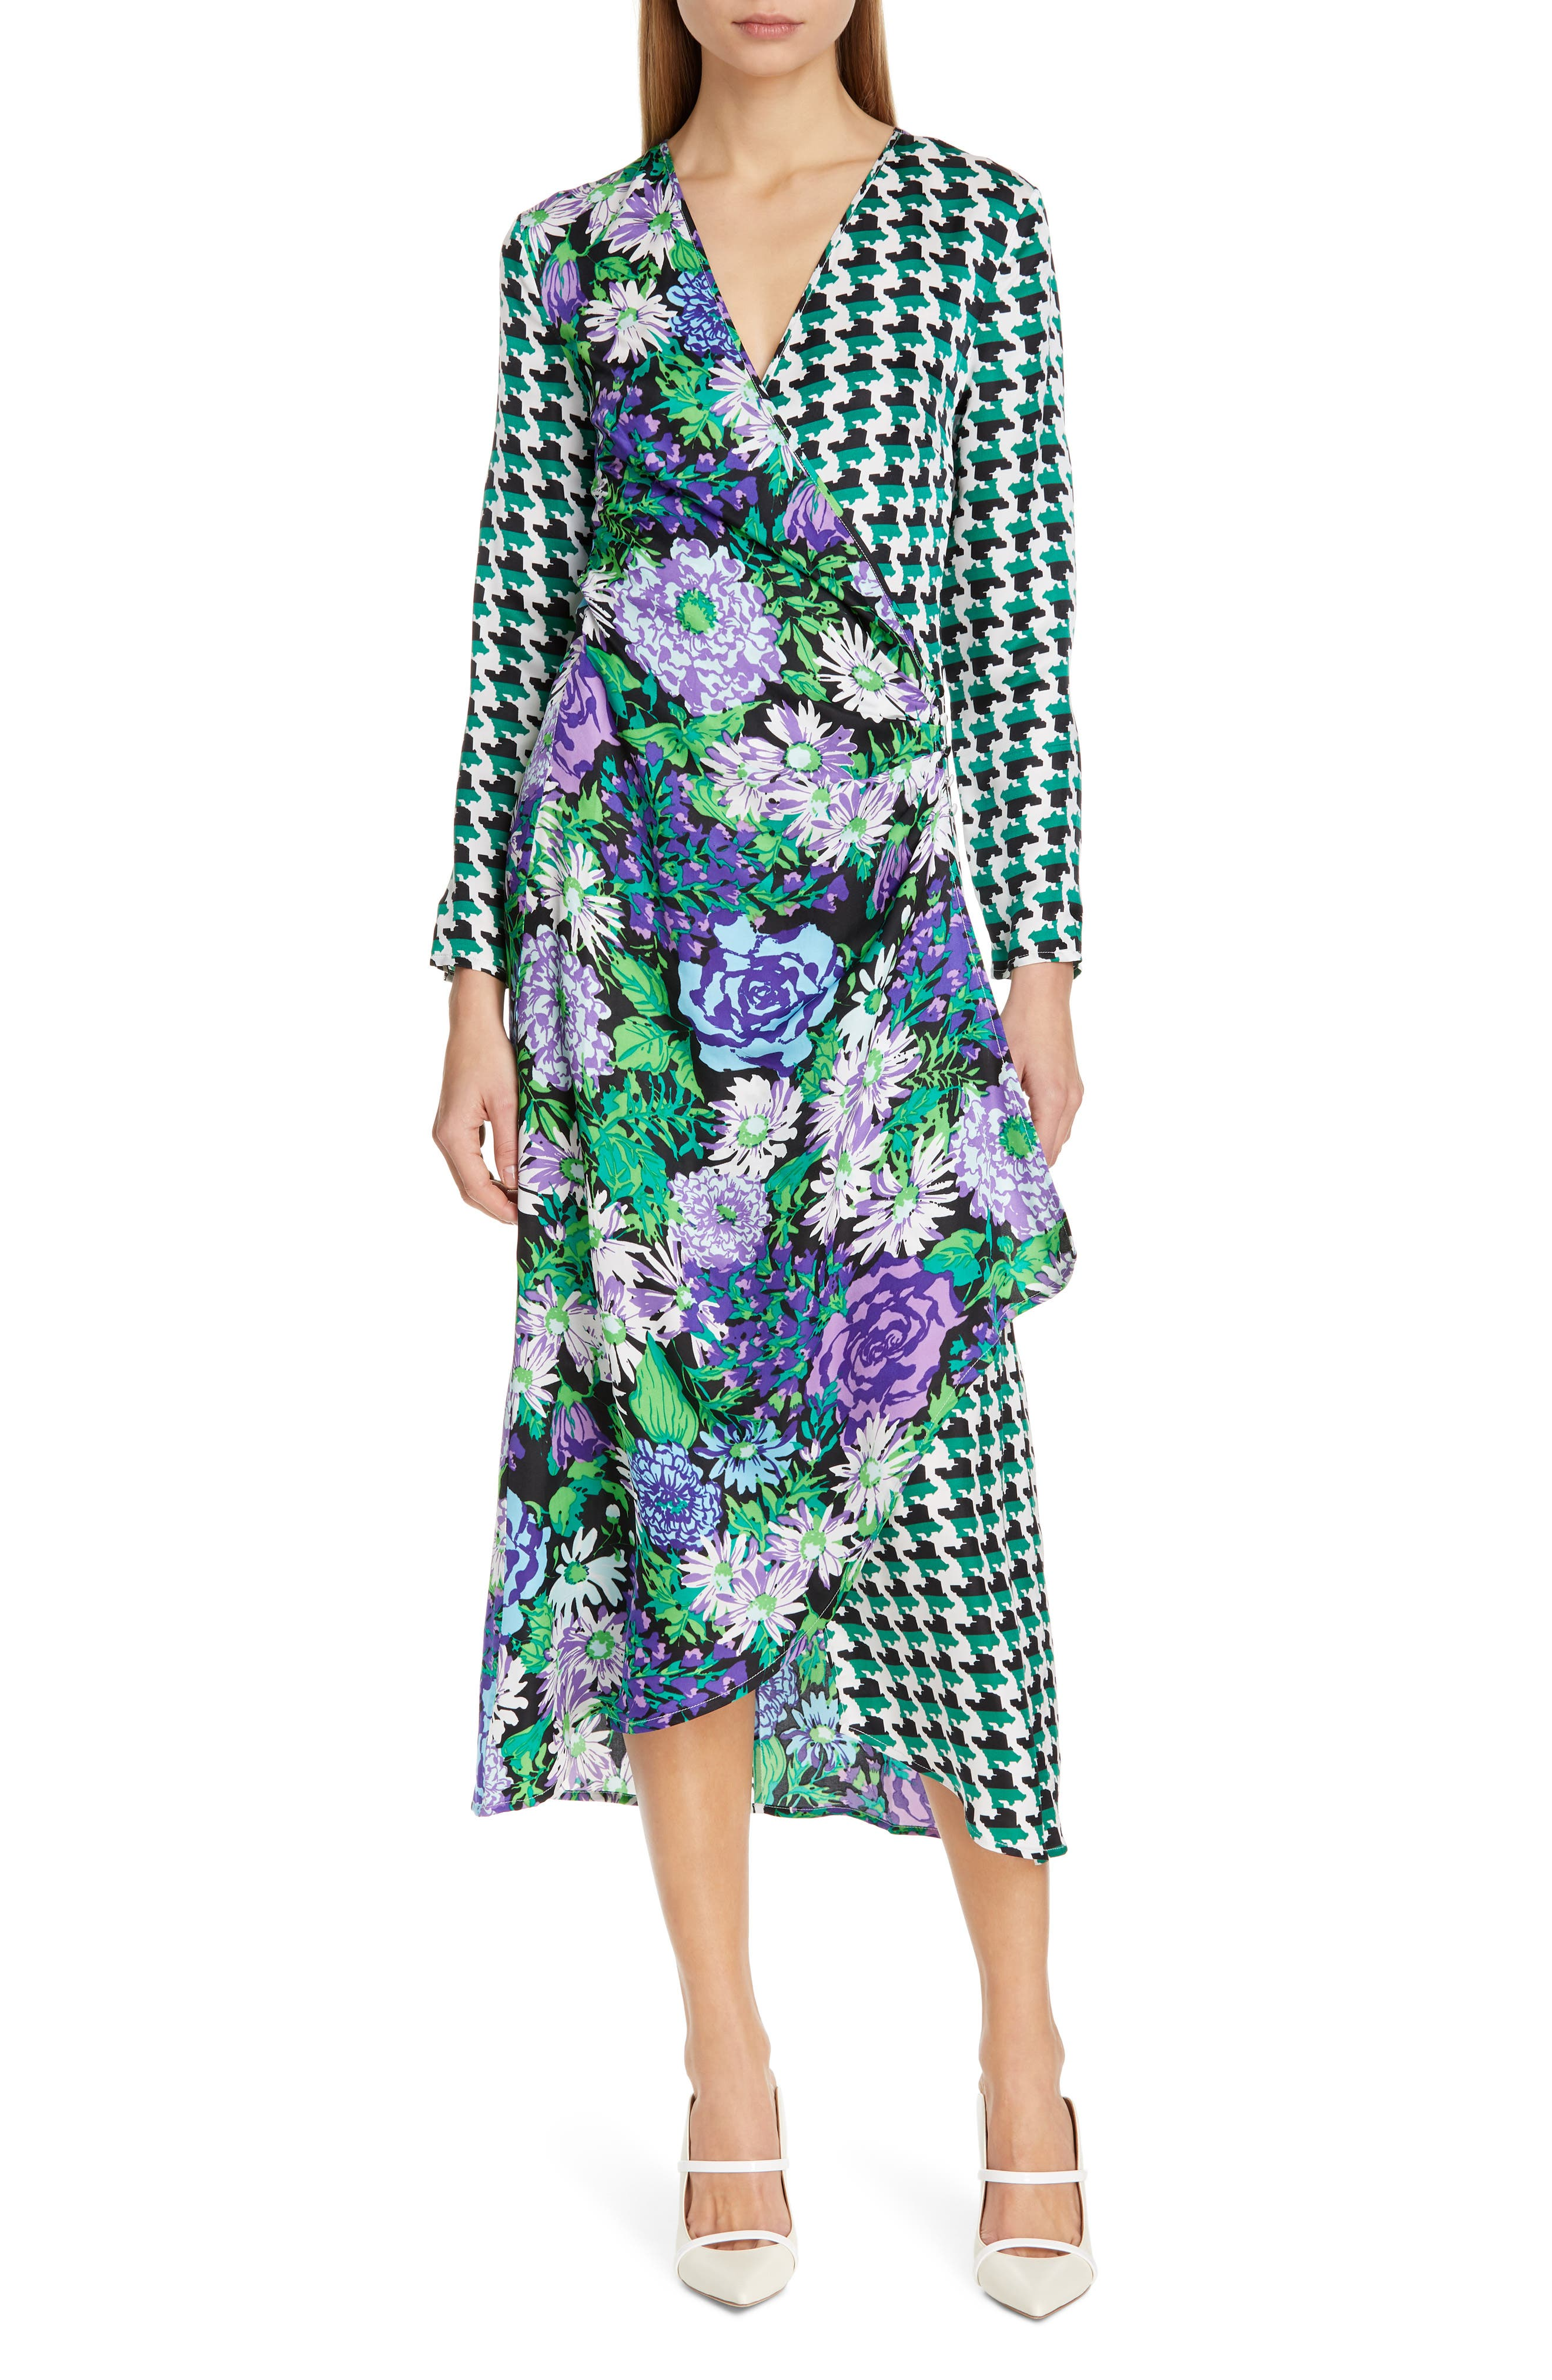 Rixo Betty Floral & Houndstooth Print Wrap Dress, US / 6 UK - Green